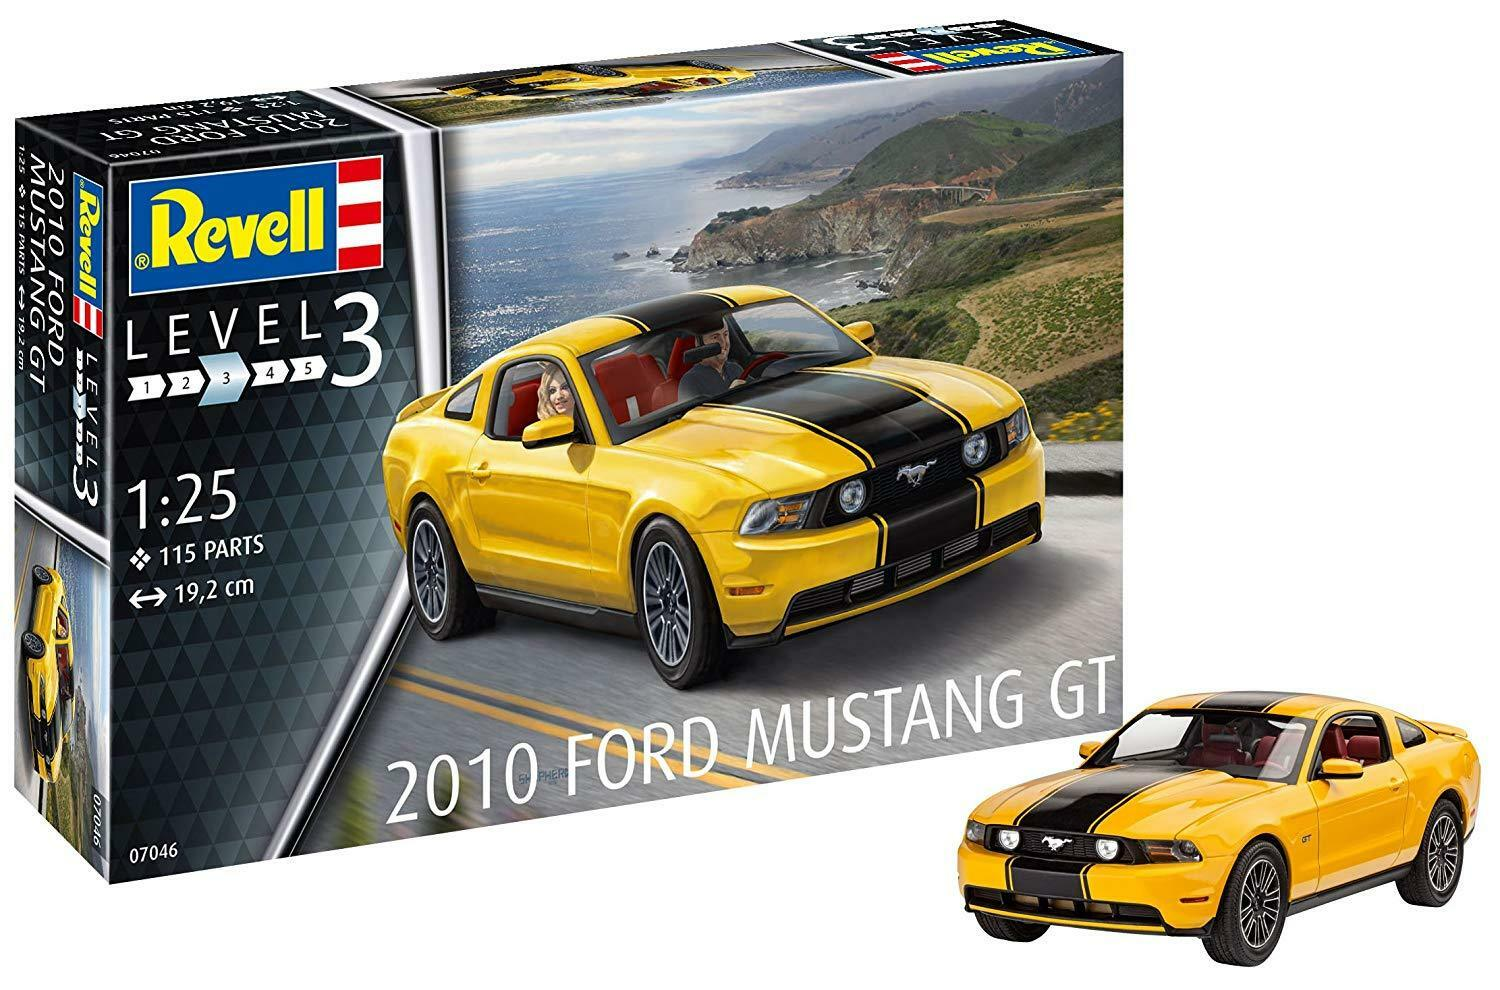 2010 Ford Mustang Gt, Revell Auto Modelo Equipo 07046